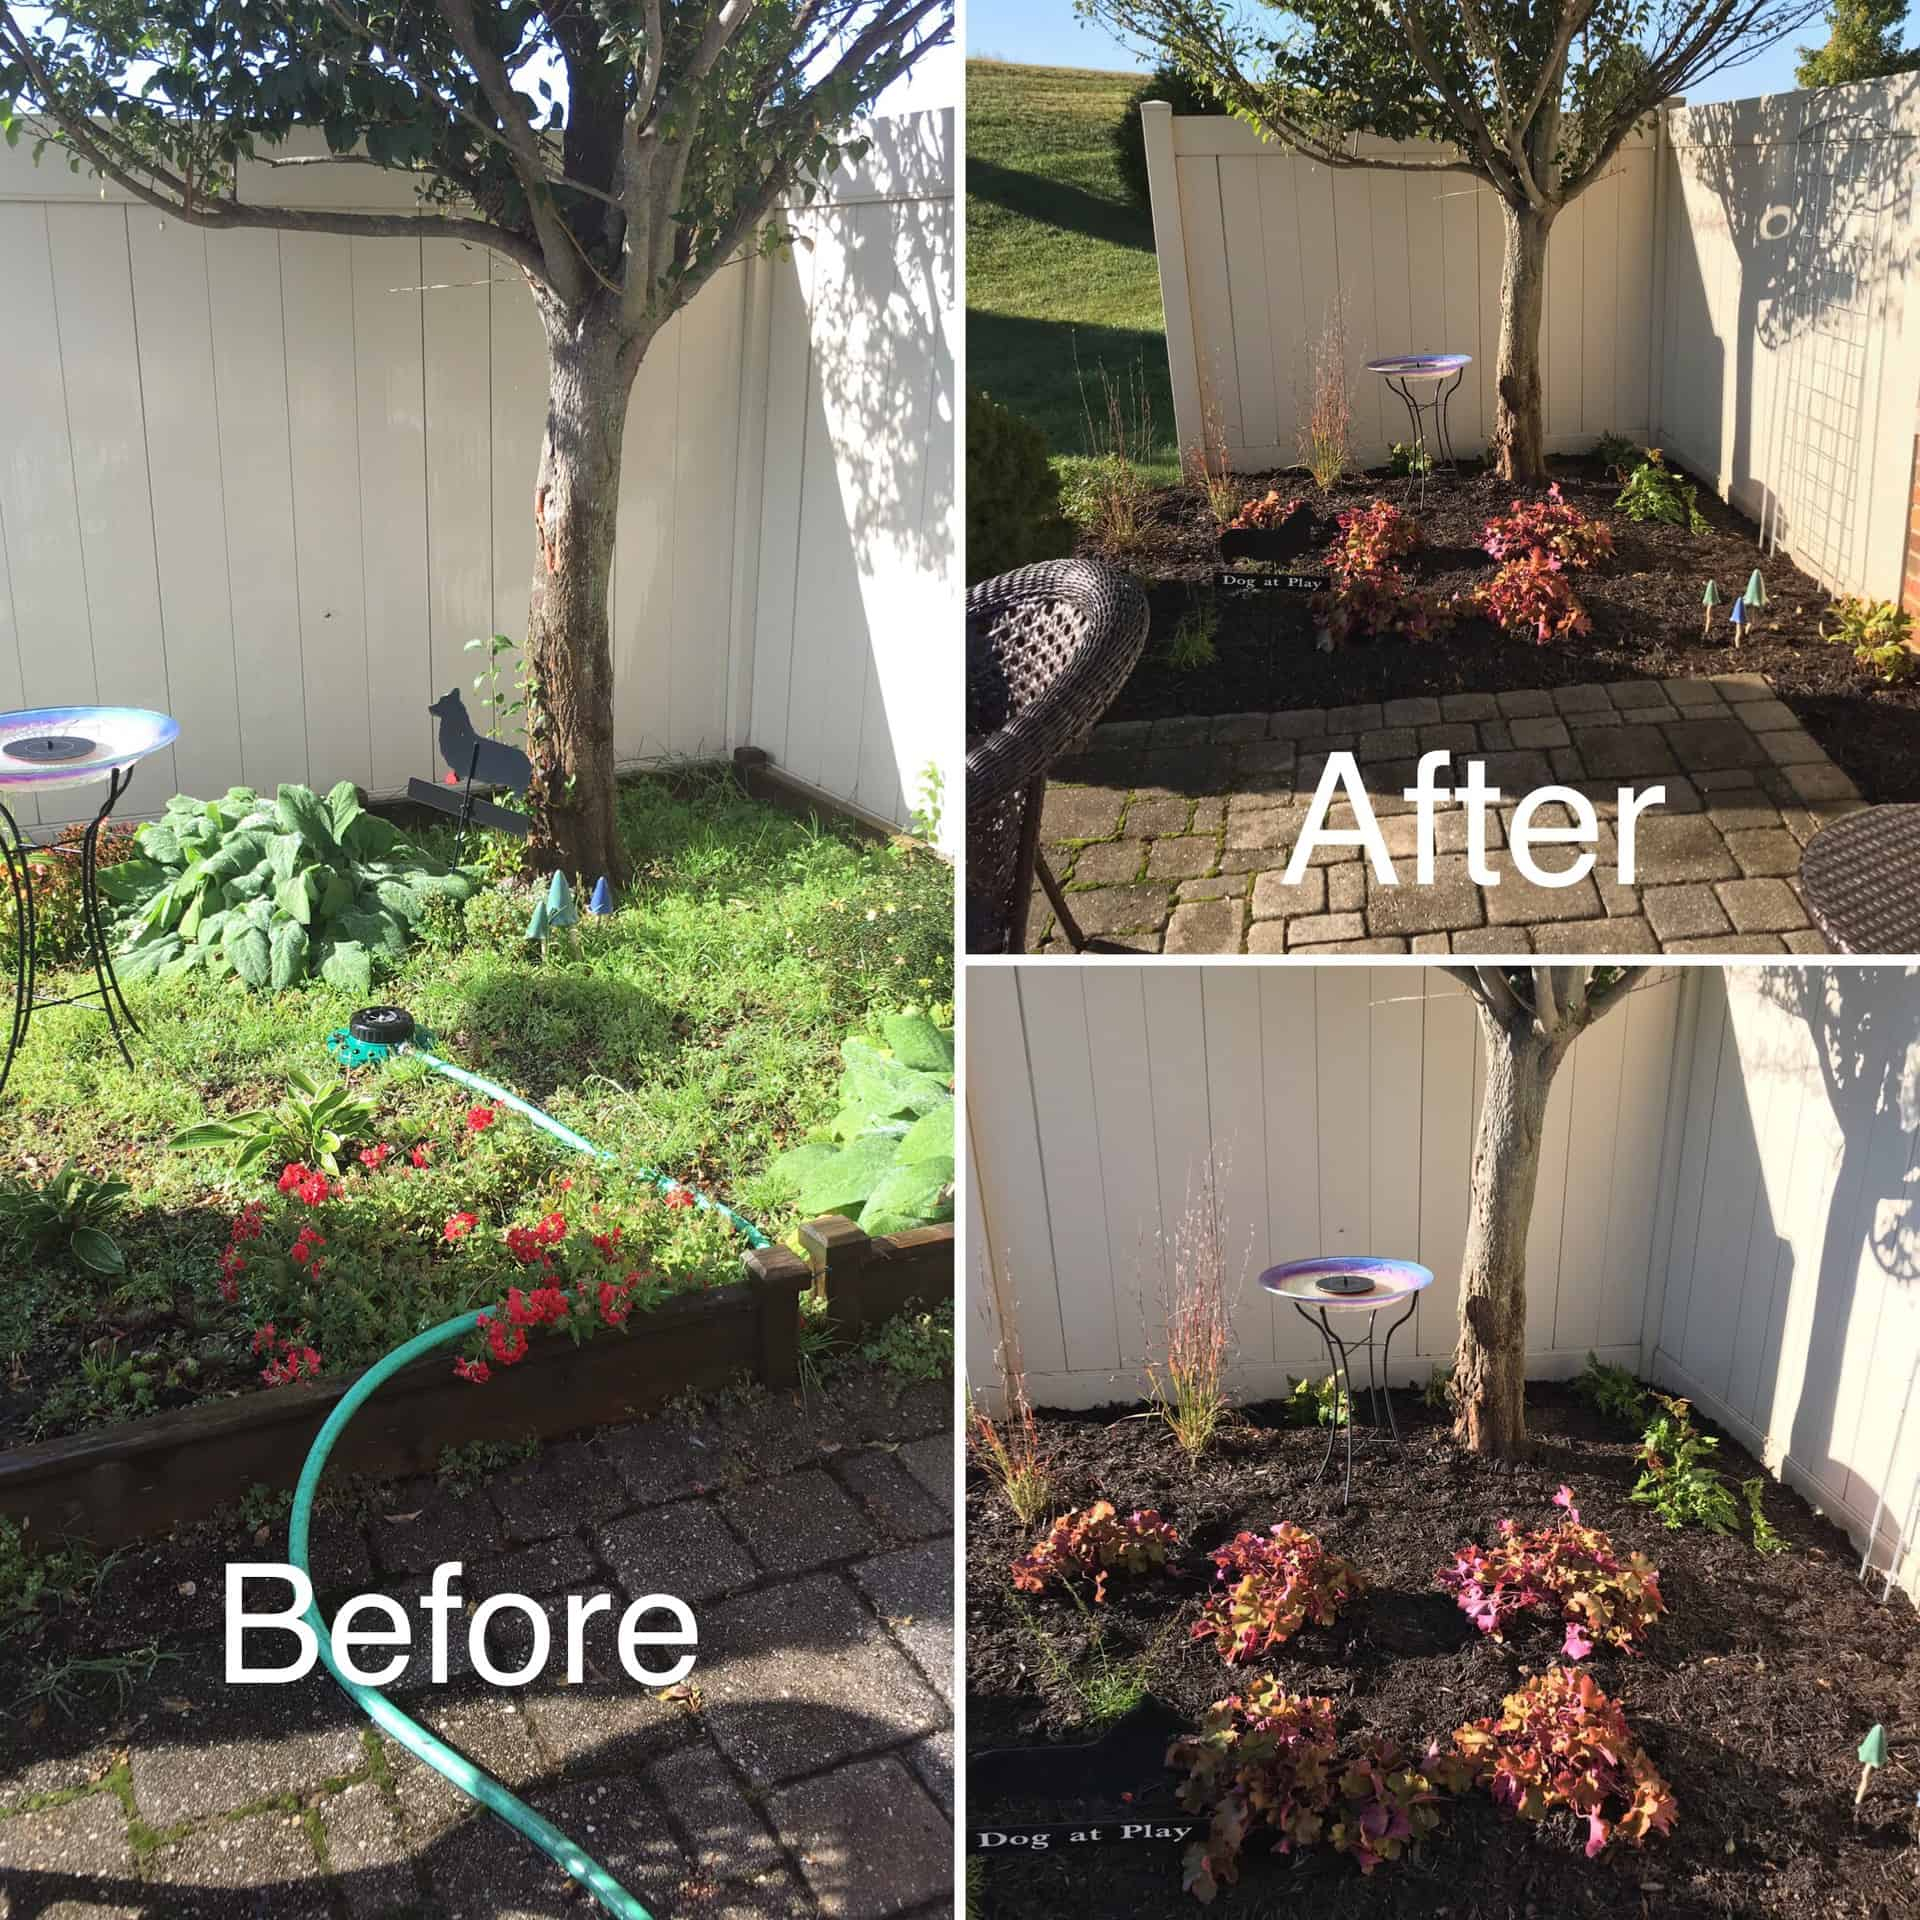 How Much Does Landscaping Cost Landscape Design Installation throughout 11 Clever Ideas How to Upgrade Cost Of Backyard Landscaping